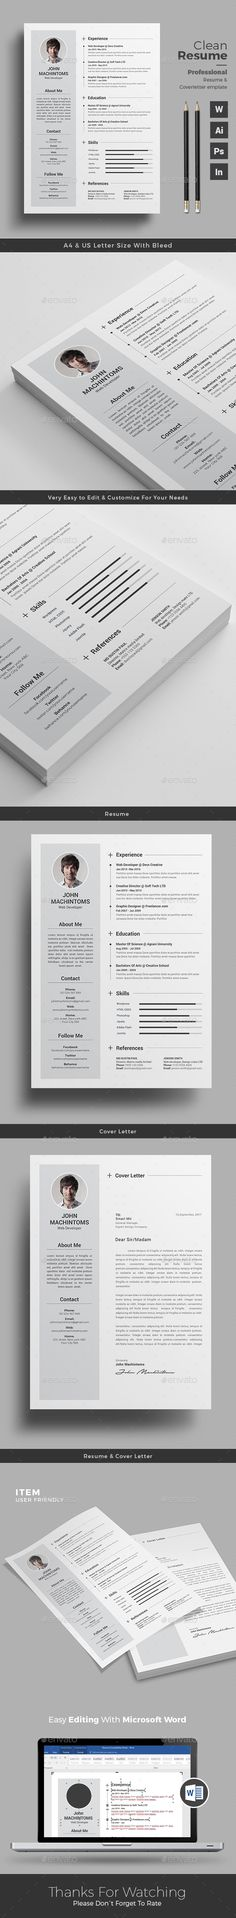 30+ Resume Templates For Mac - Free Word Documents Download | Cv